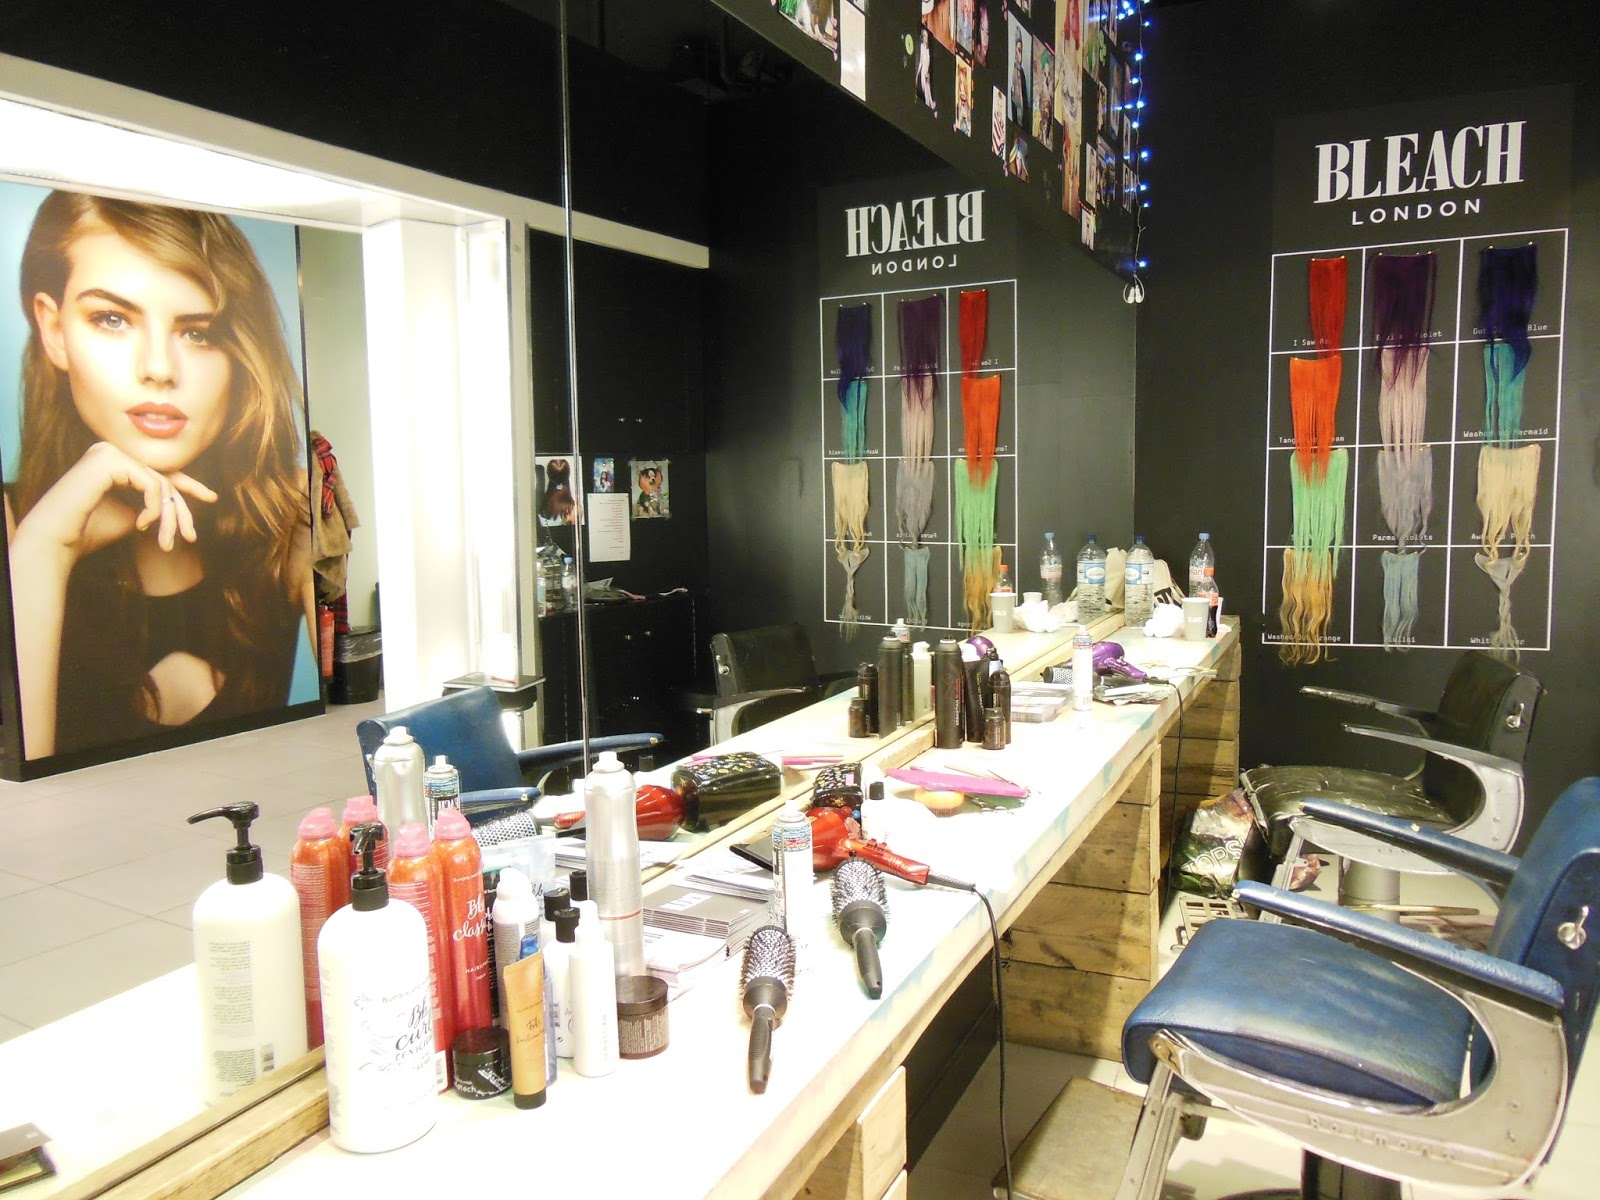 Bleach london salon